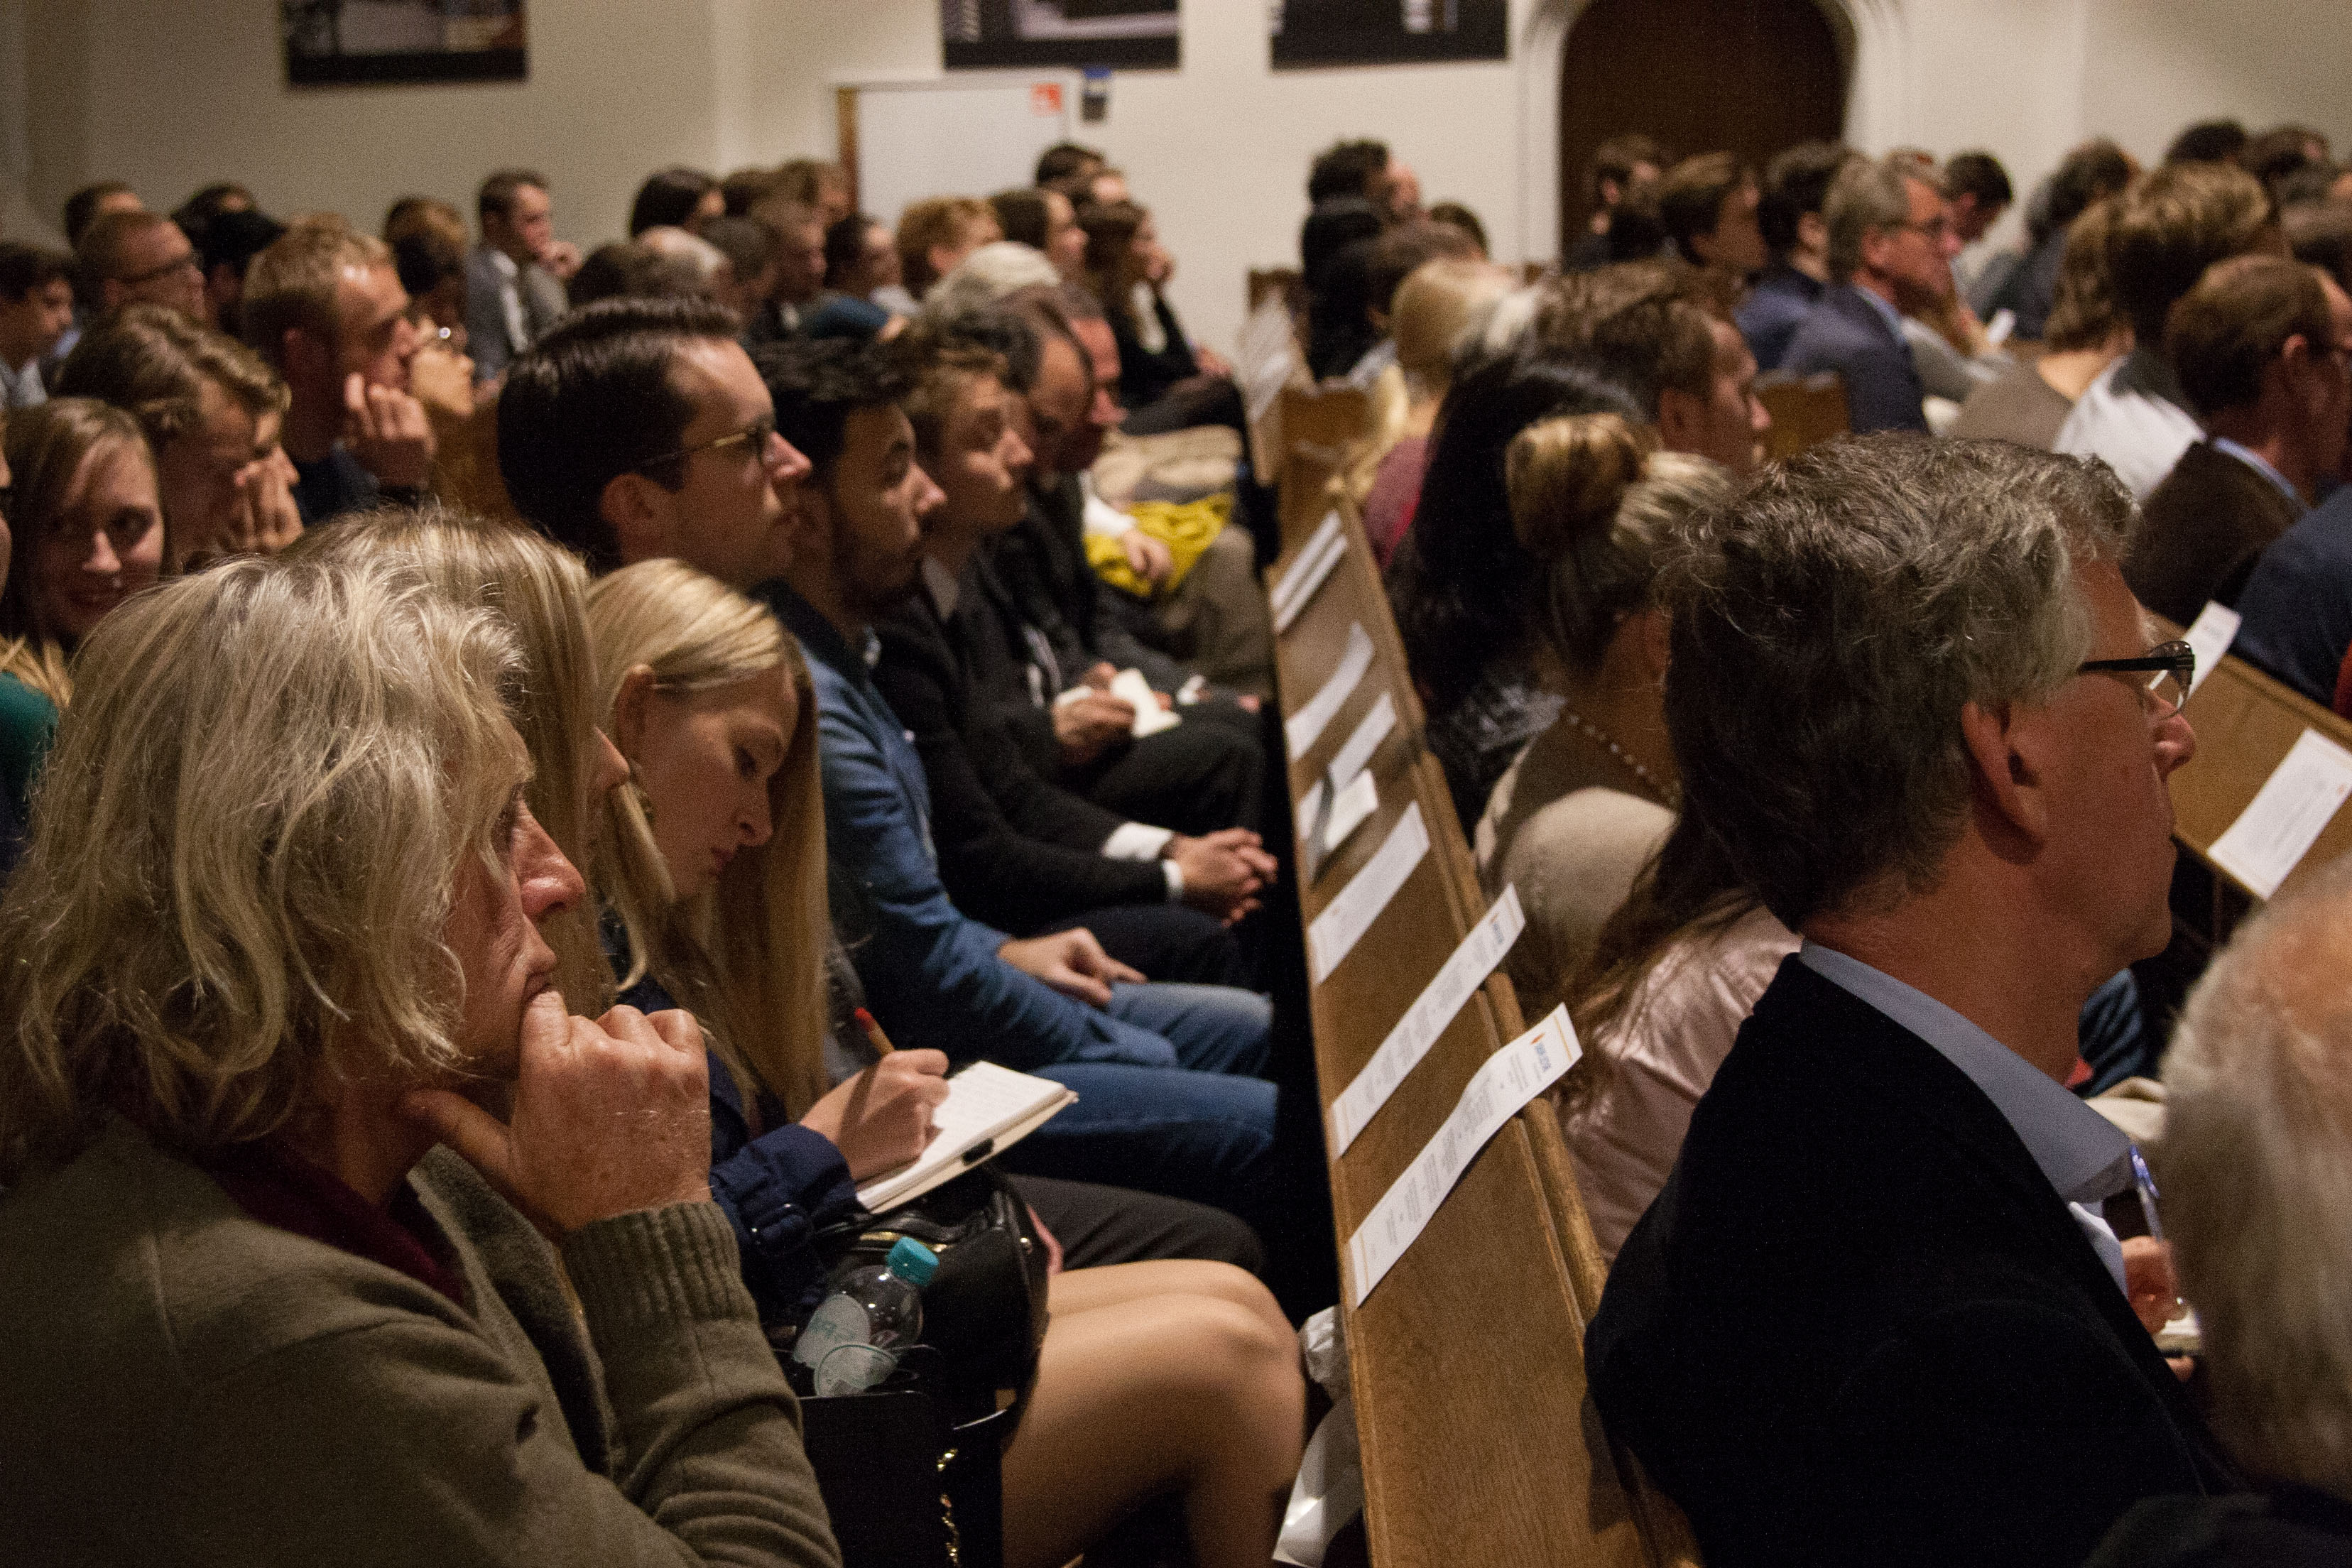 Europe Lecture 2014: audience at the Kloosterkerk